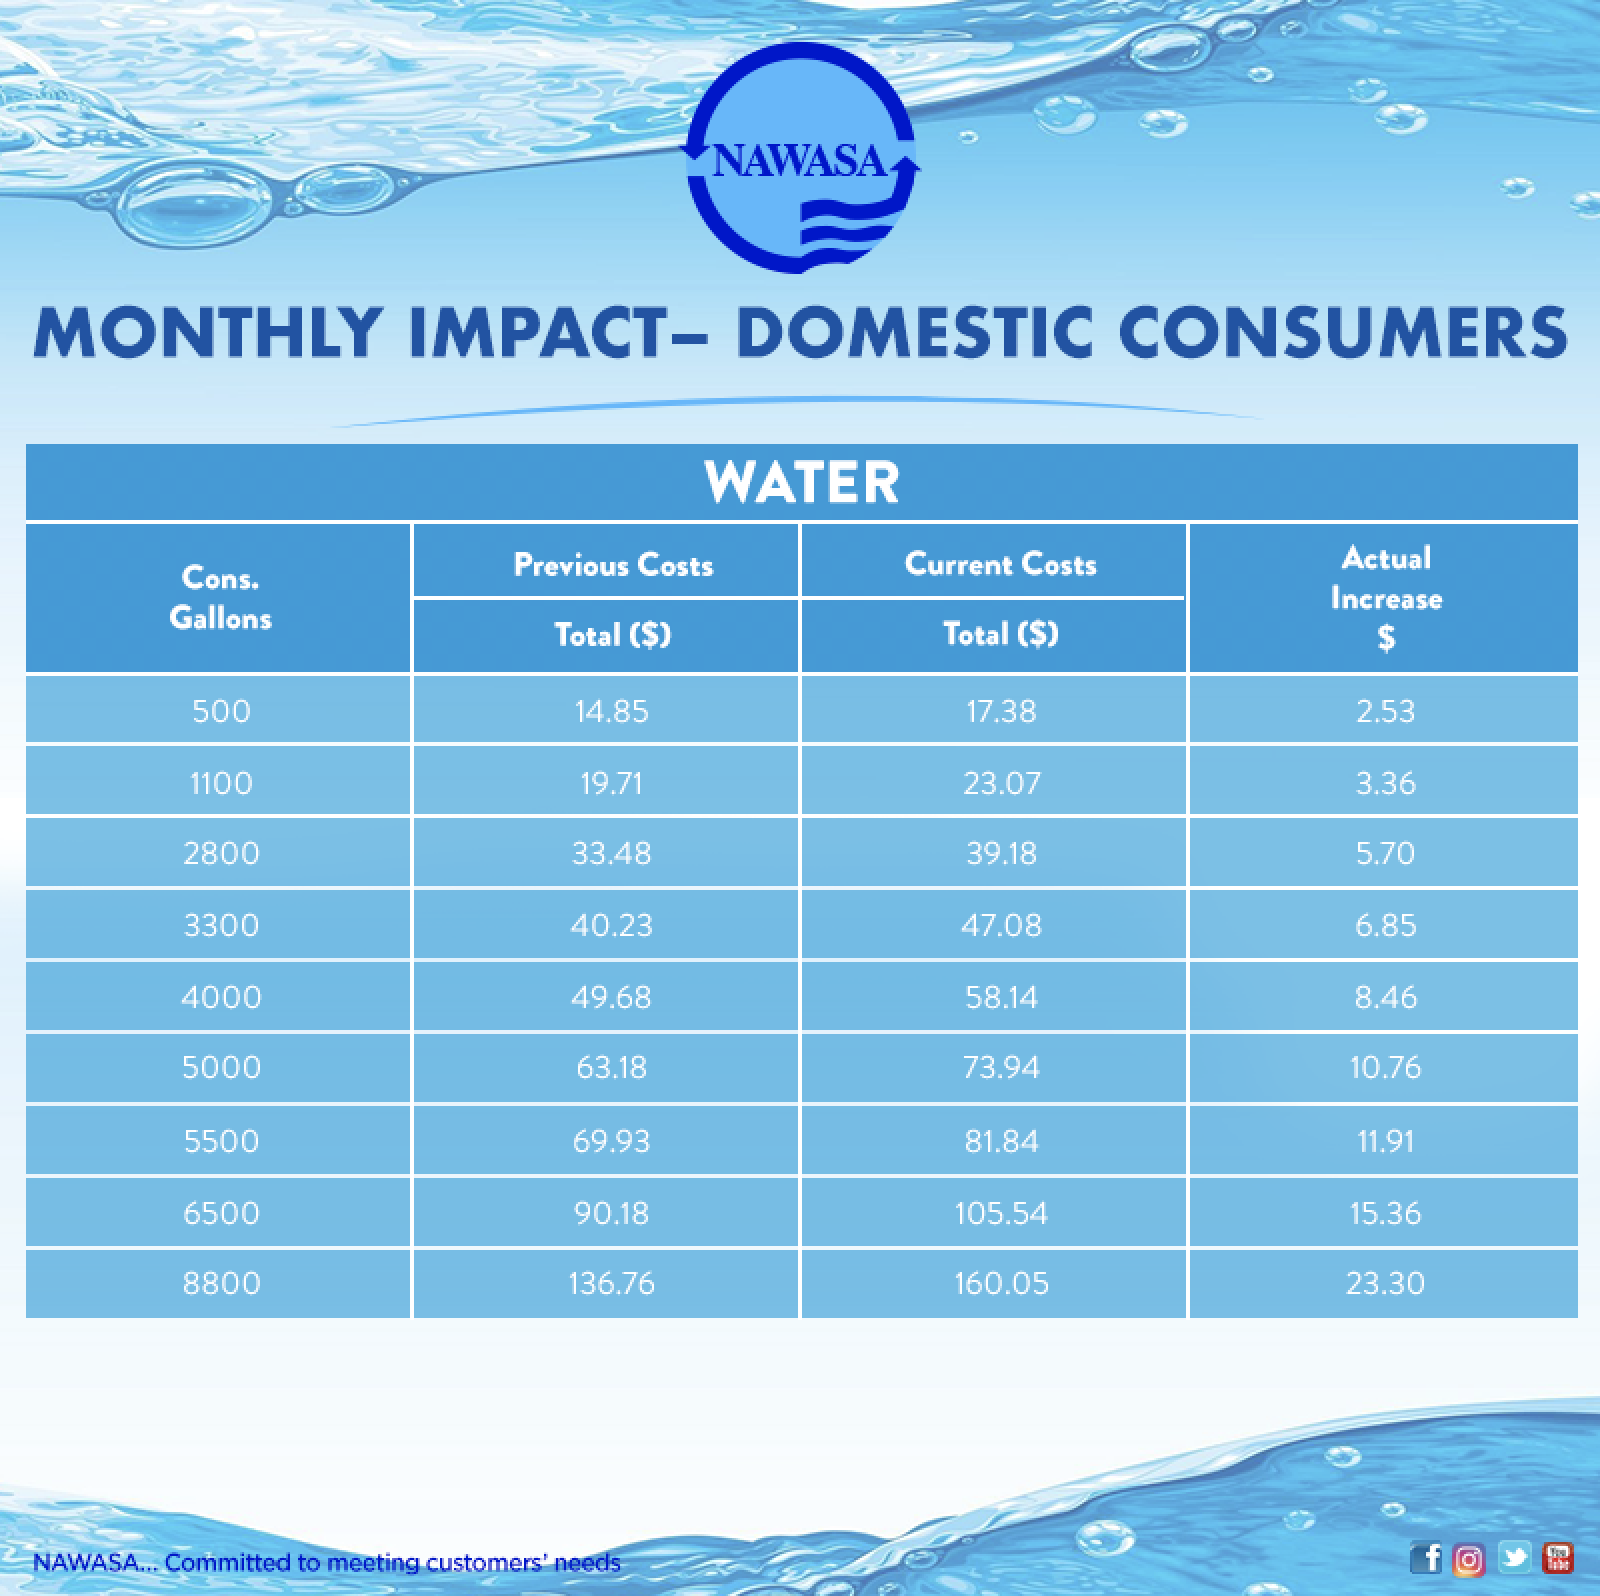 Monthly impact of new rates on domestic consumers